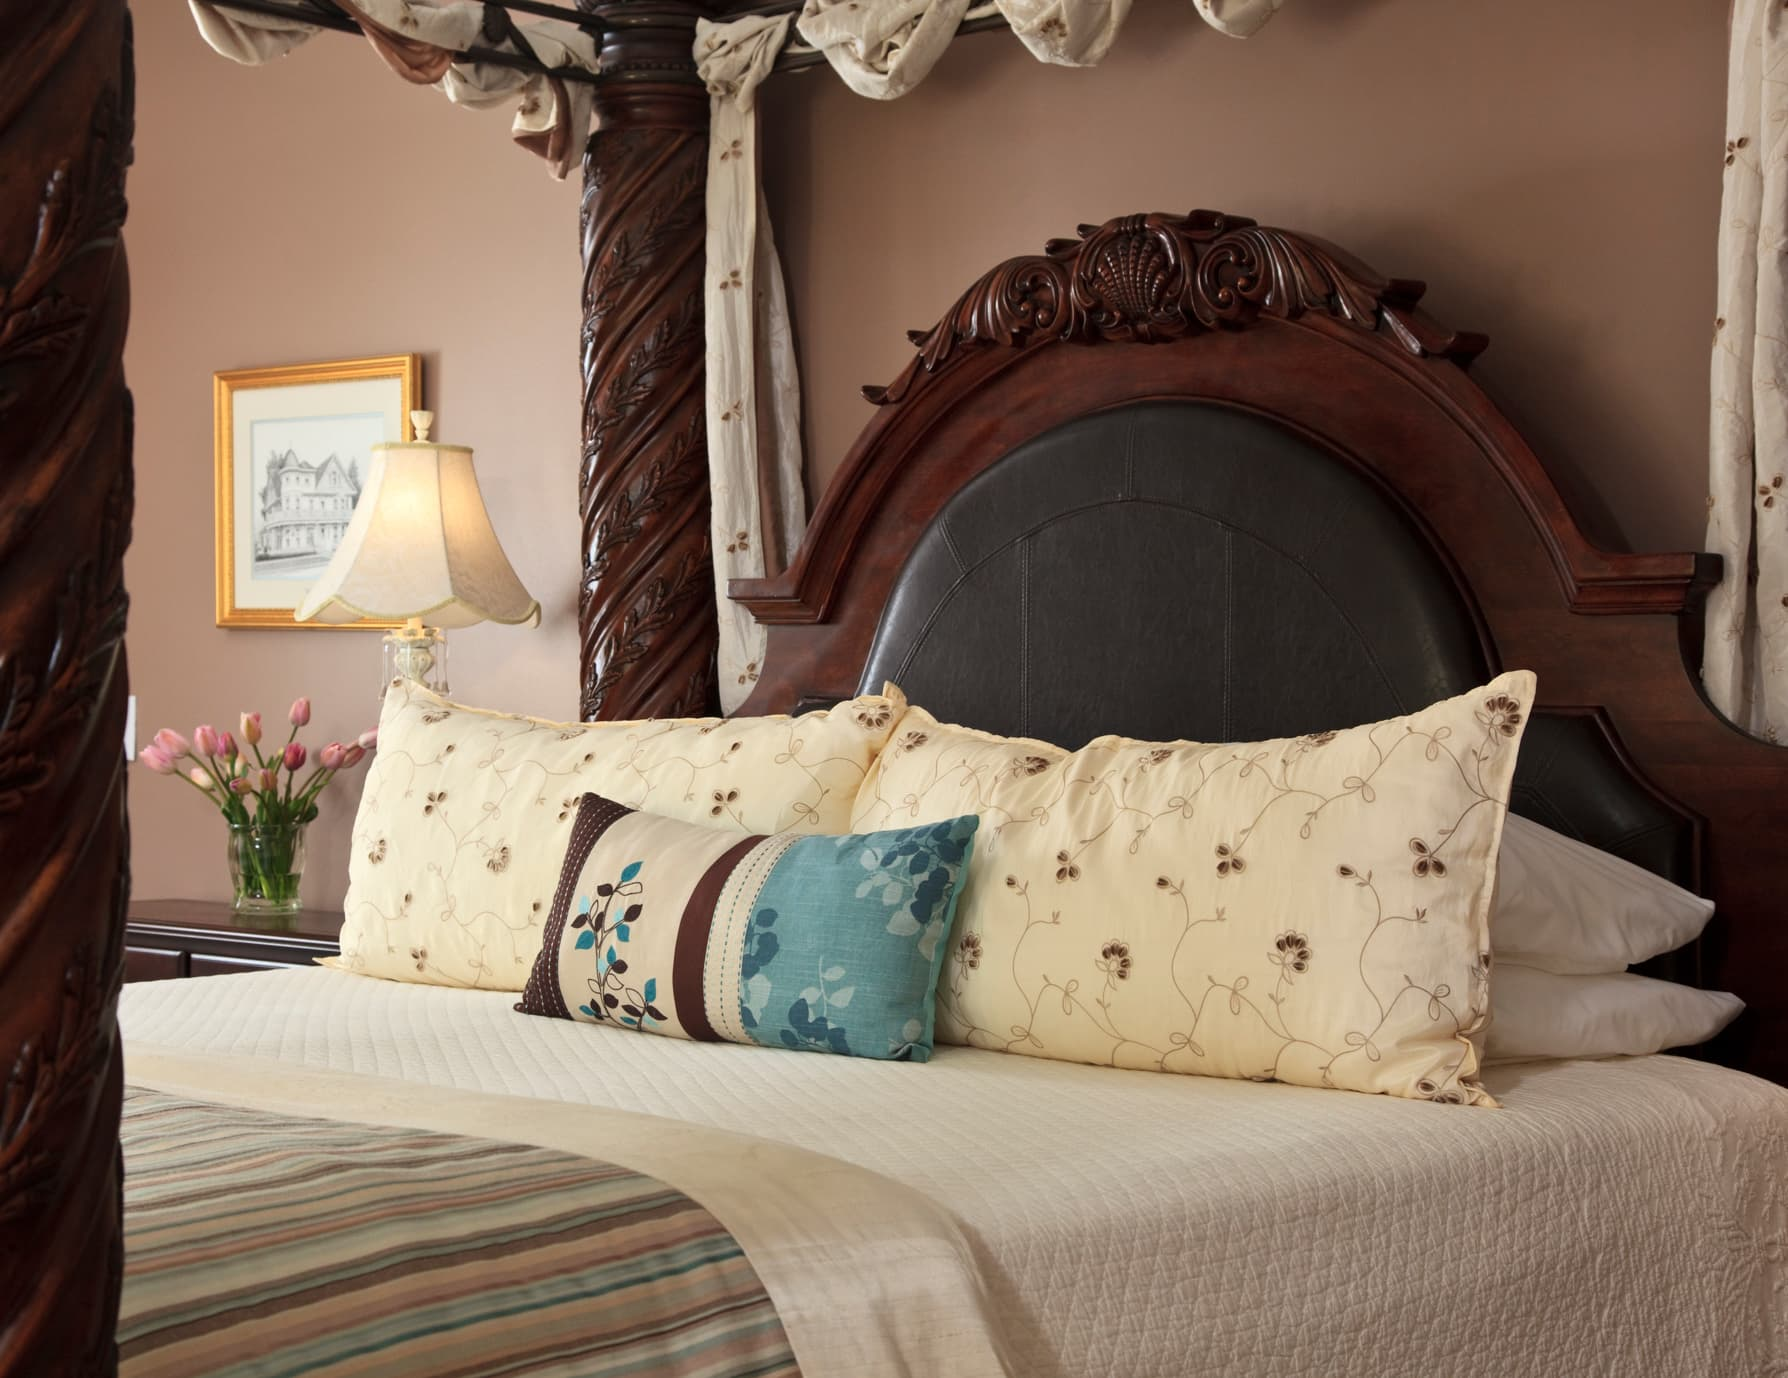 B&B on Roanoke Island Sturdy King Four Poster Bed and Side Tables